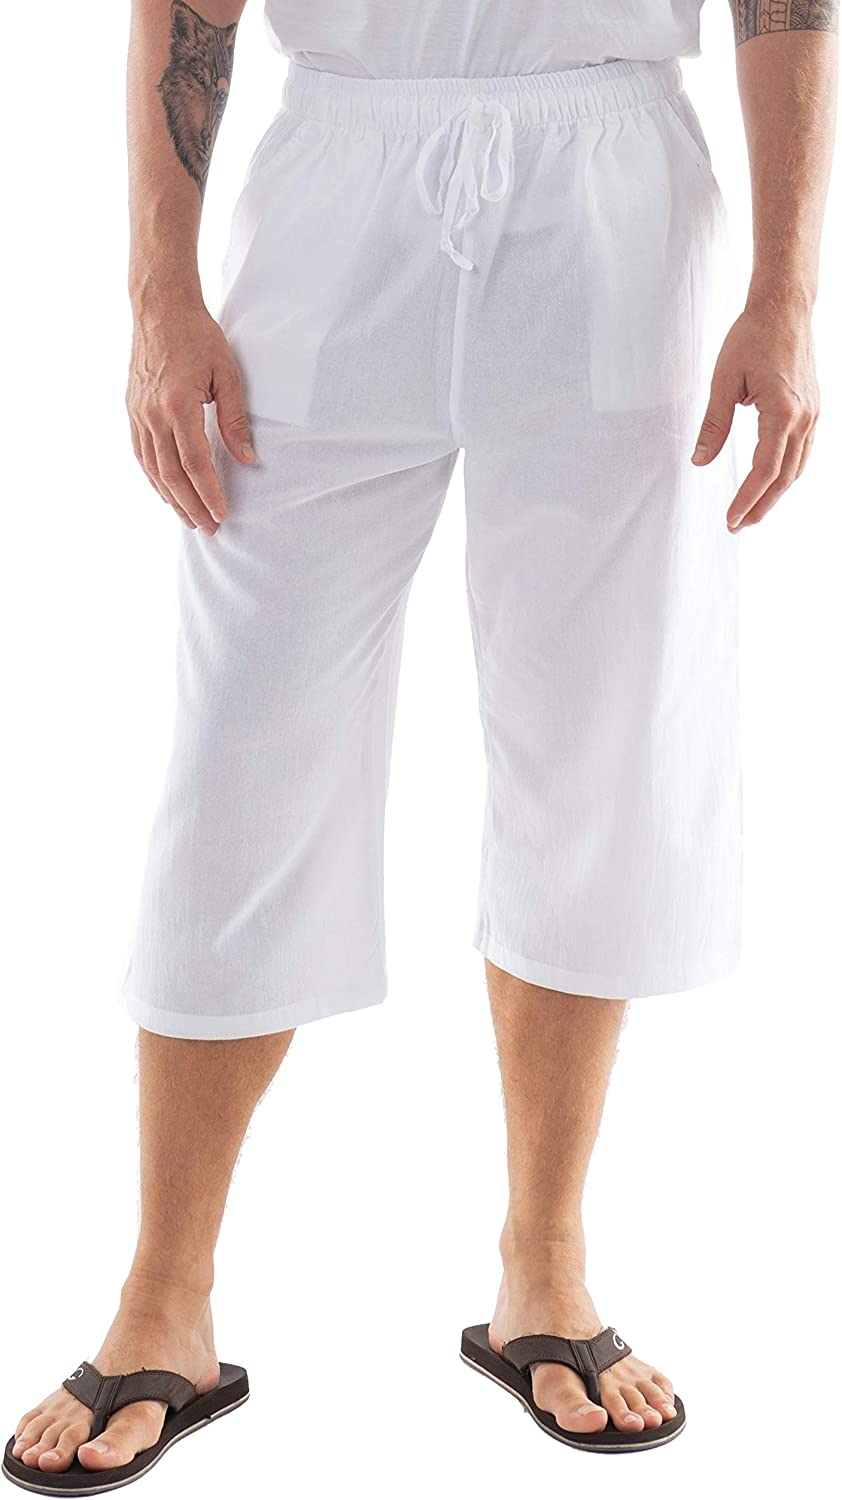 CandyHusky Mens Cotton Pilates Yoga Shipping included Lounge Max 46% OFF Sleep Pa Beach Capris